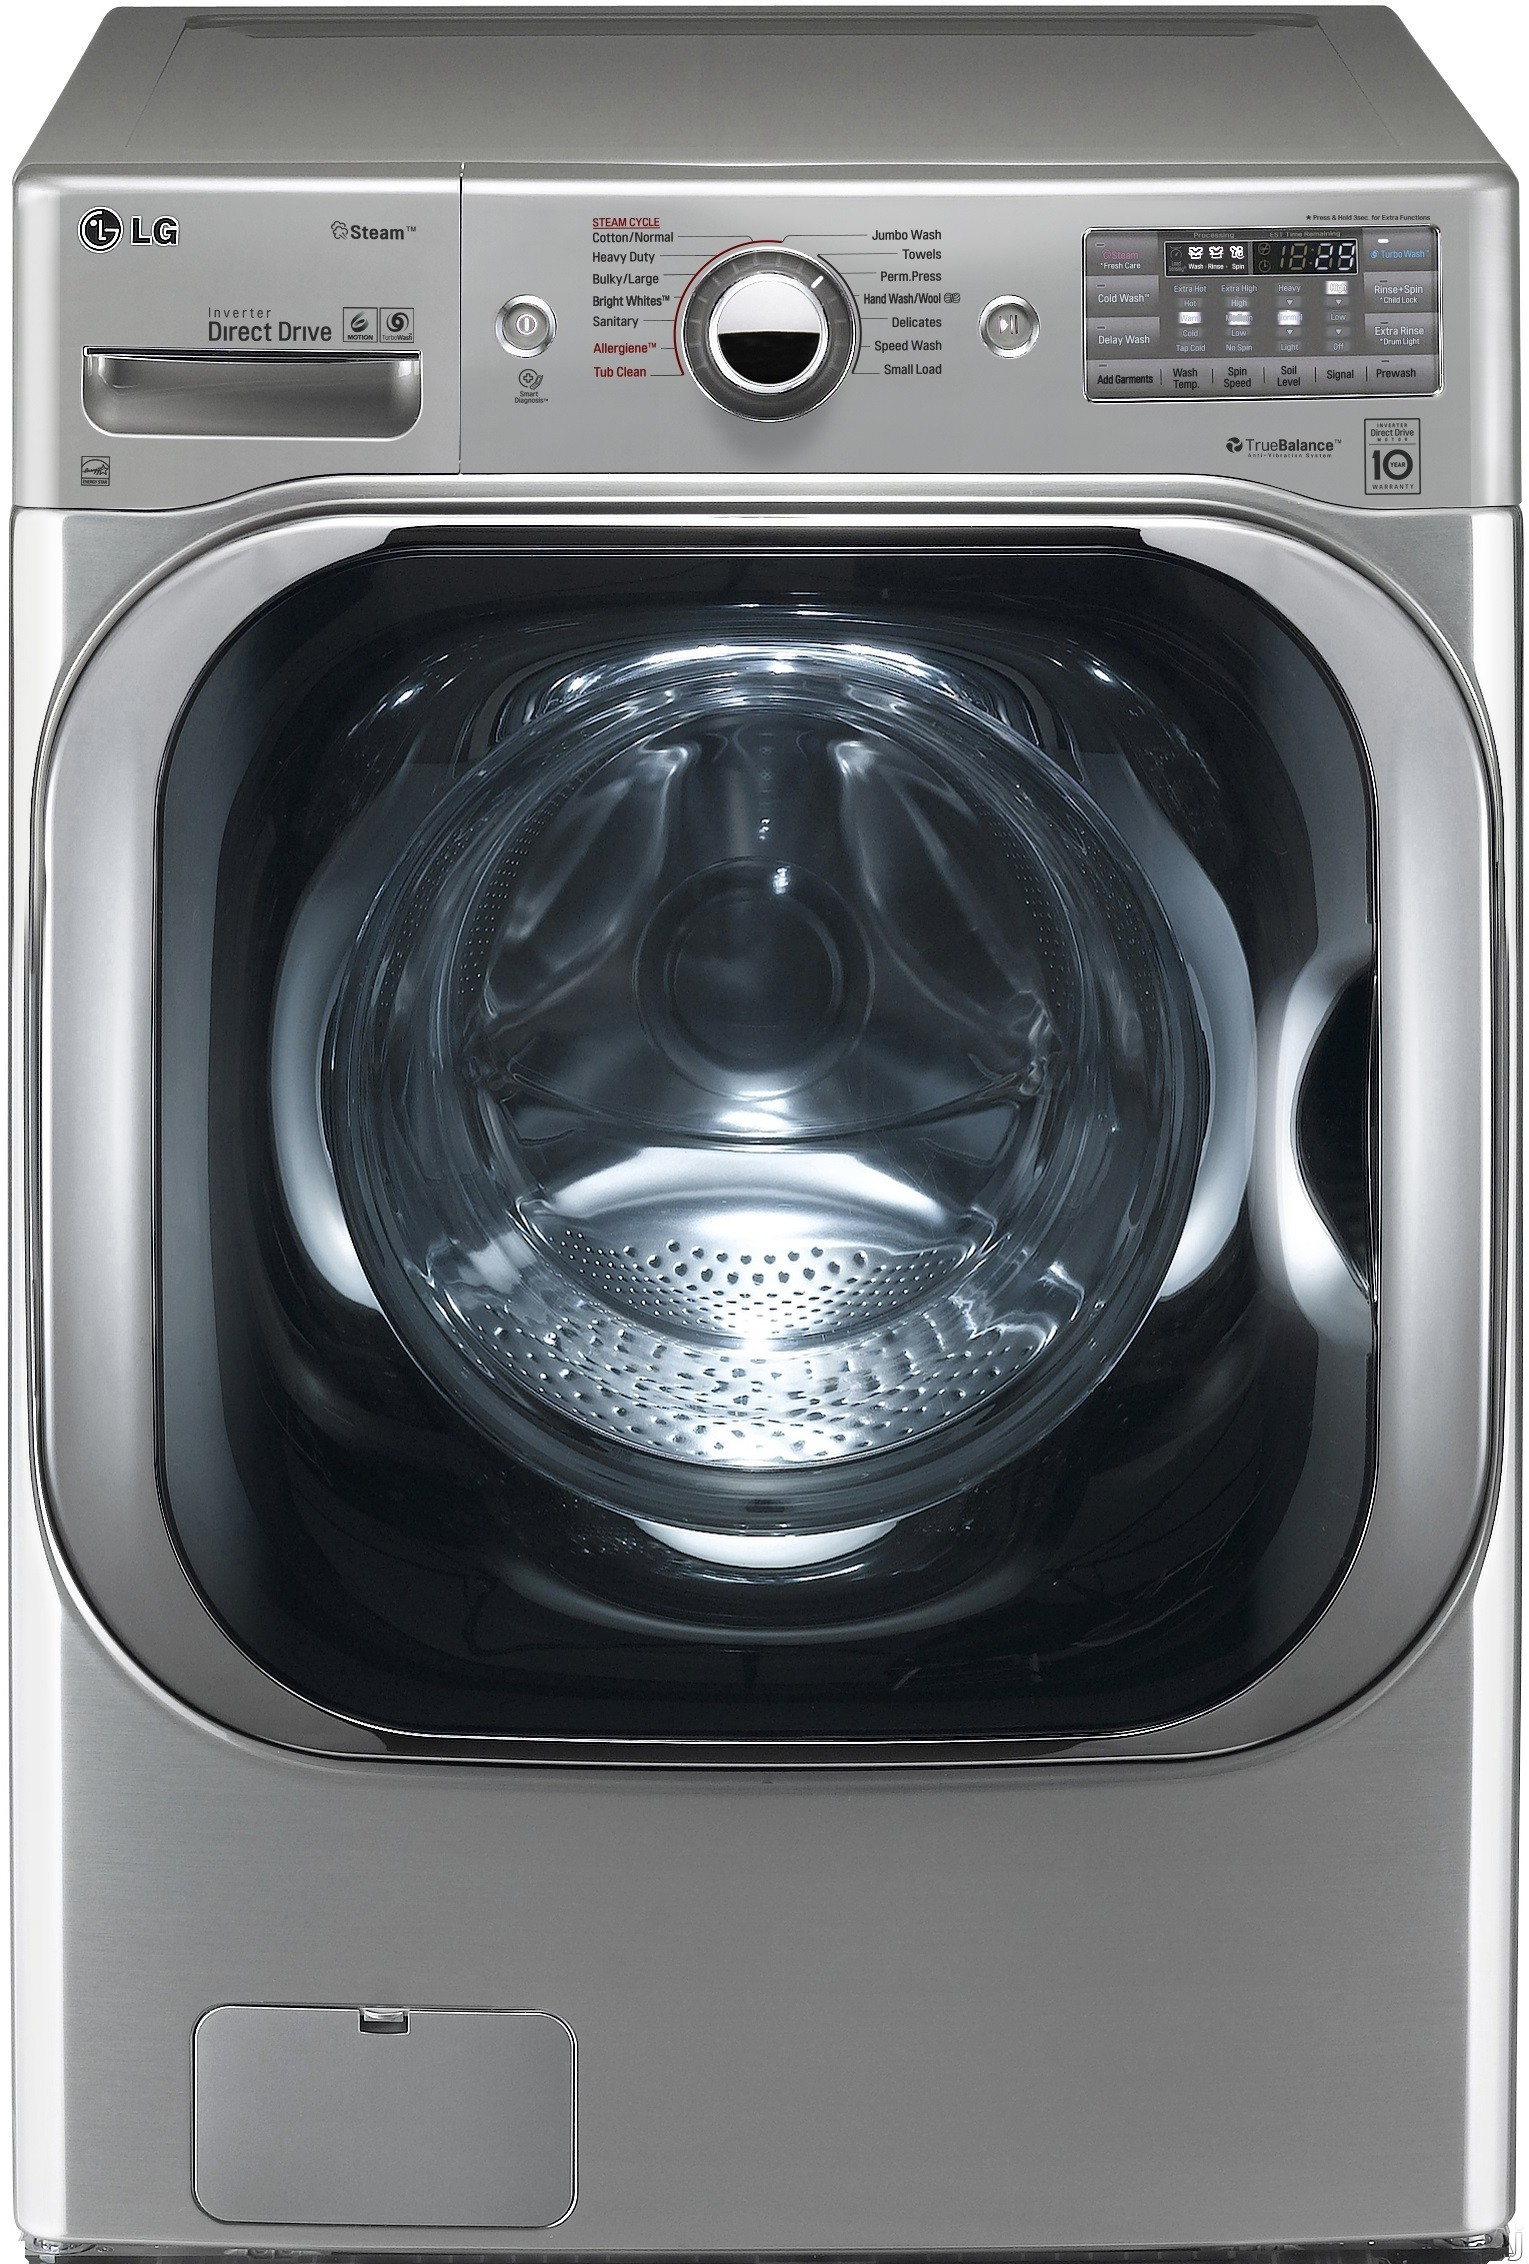 LG WM8100HVA 29 Inch 5.2 cu. ft. Front Load Washer with 14 Wash Programs, TurboWash Technology, Steam, 1,300 RPM, Allergiene Cycle, SenseClean, LoDecibel Quiet Operation, NFC Tag on Technology, NeveRu